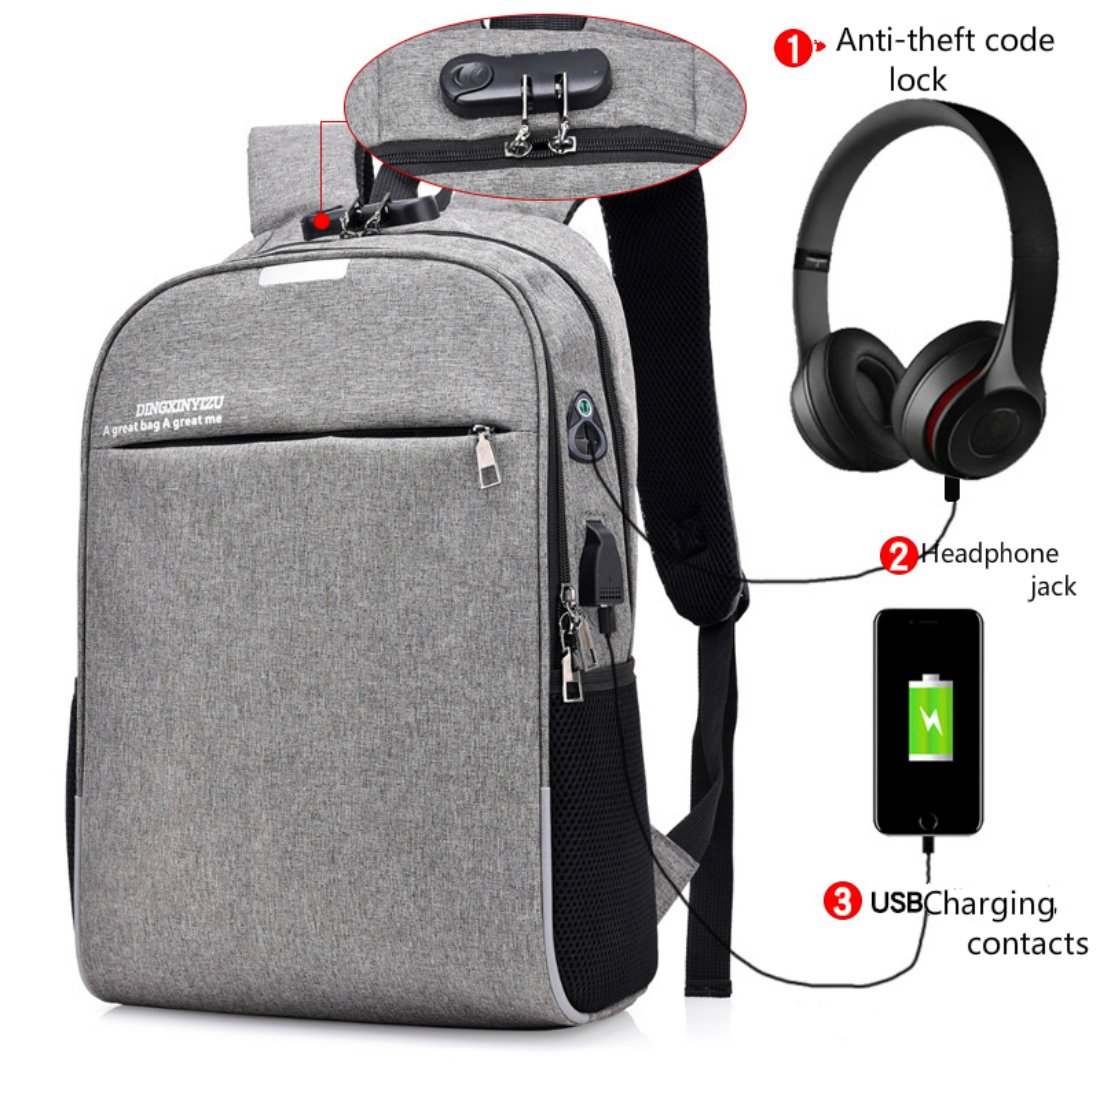 newest 17fe2 ae273 Anti-Theft Laptop Backpack, Business Waterproof Backpack Travel Bag with  USB Charging Port and Headphone Jack for Men and Women, College Bag for ...